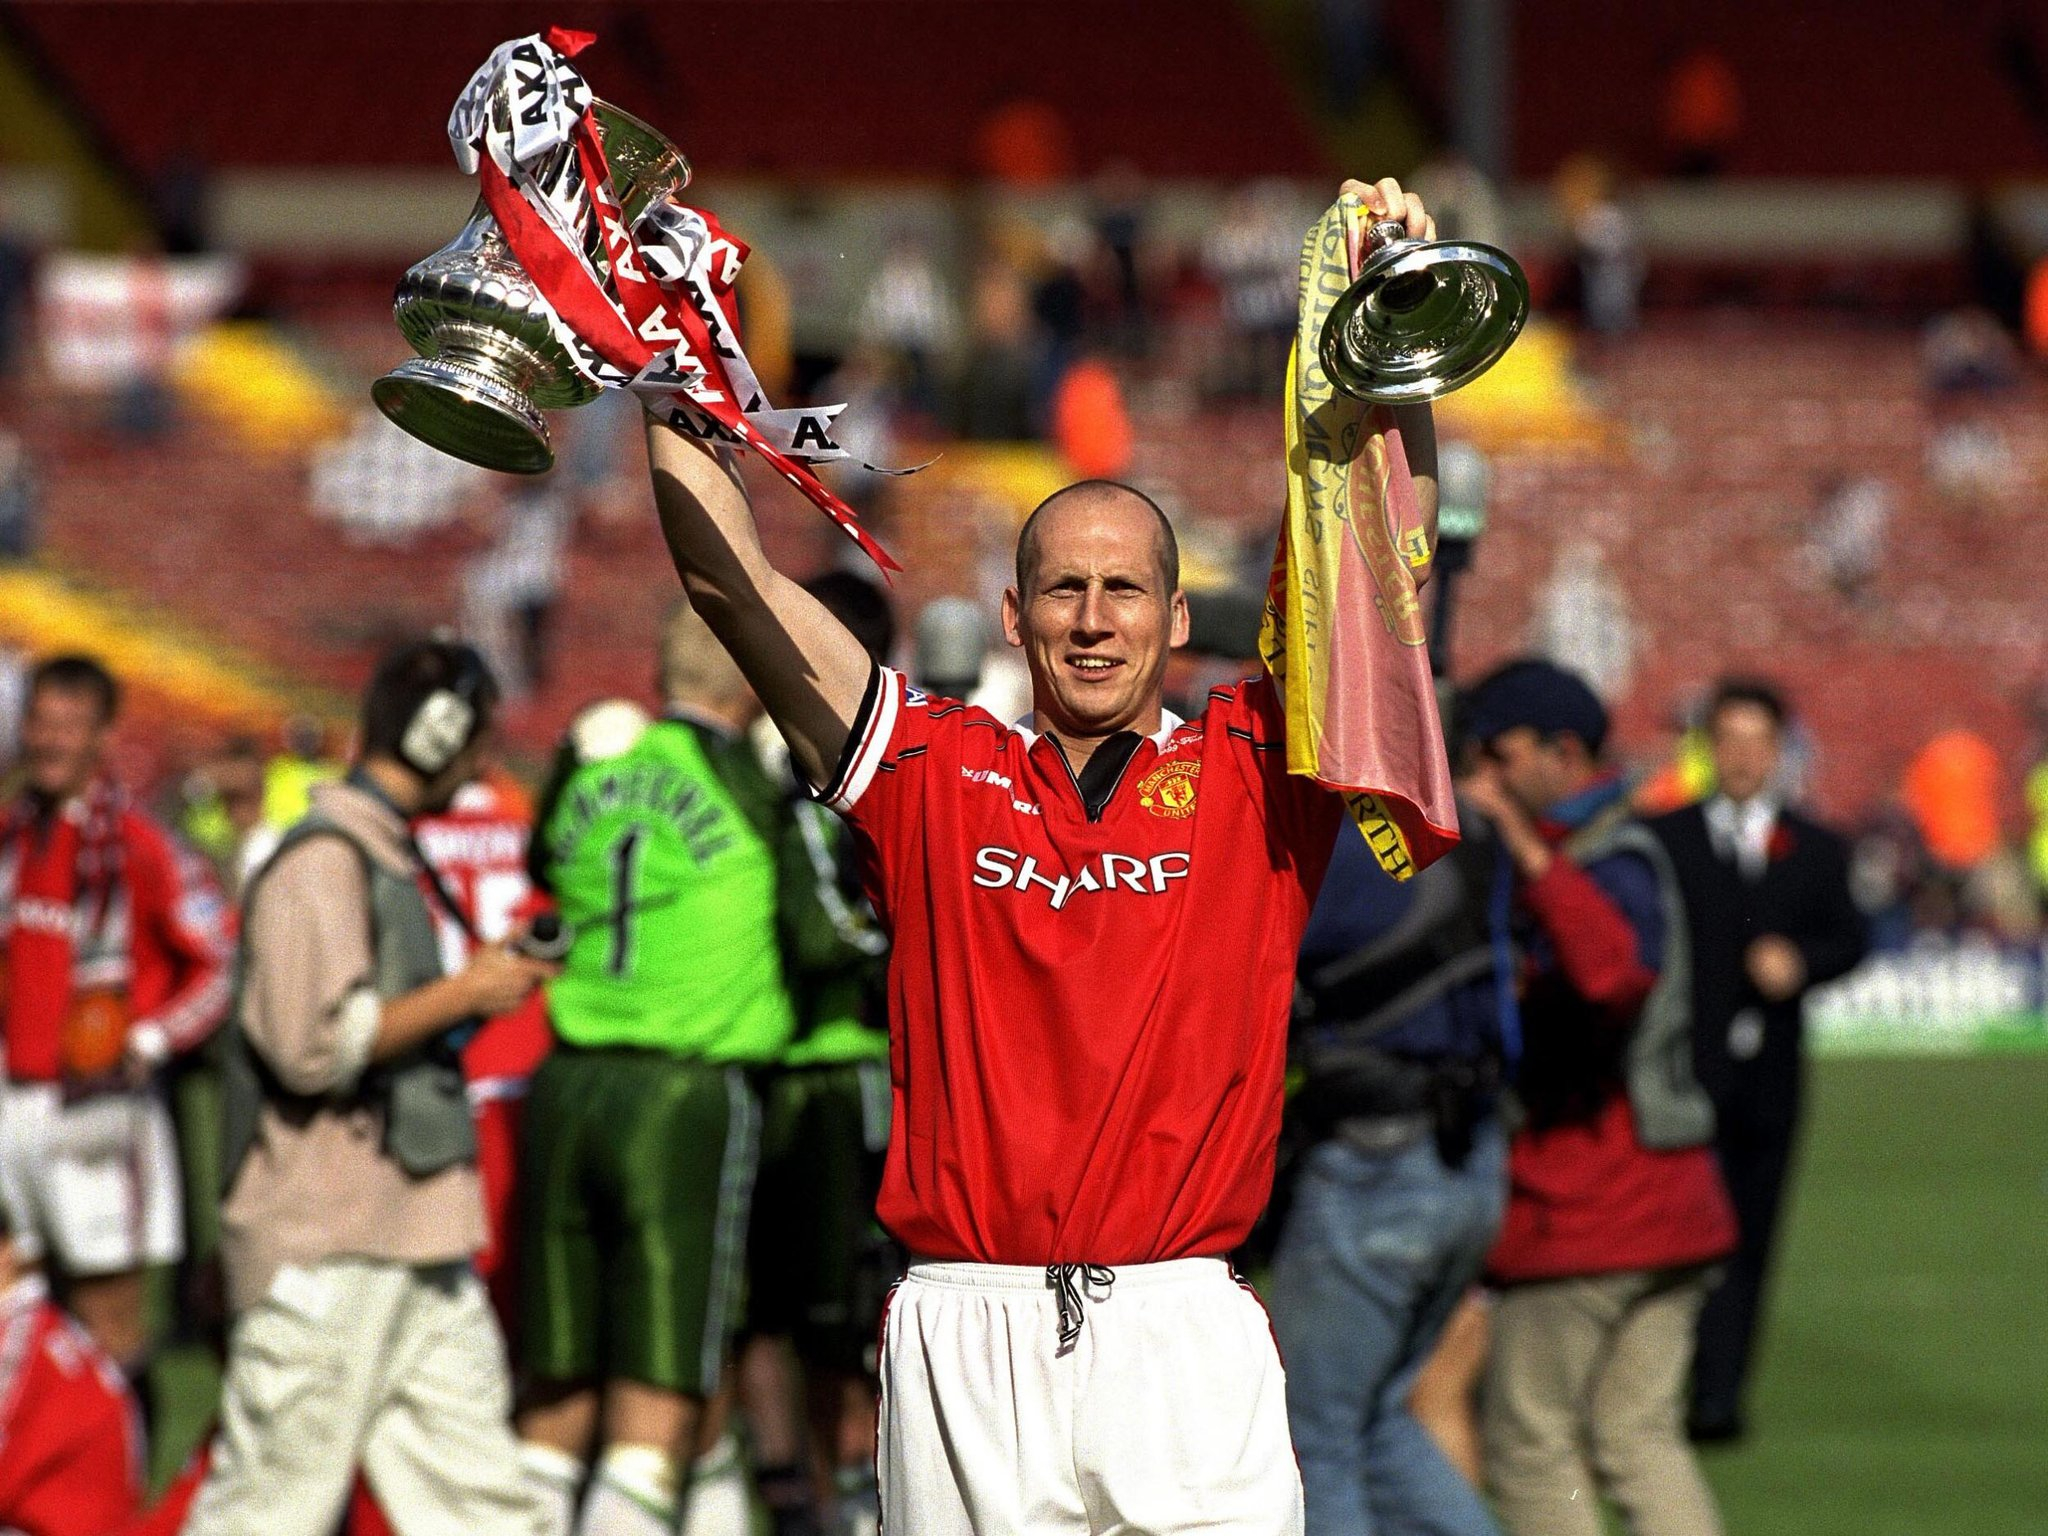 Happy 45th Birthday to Jaap Stam!